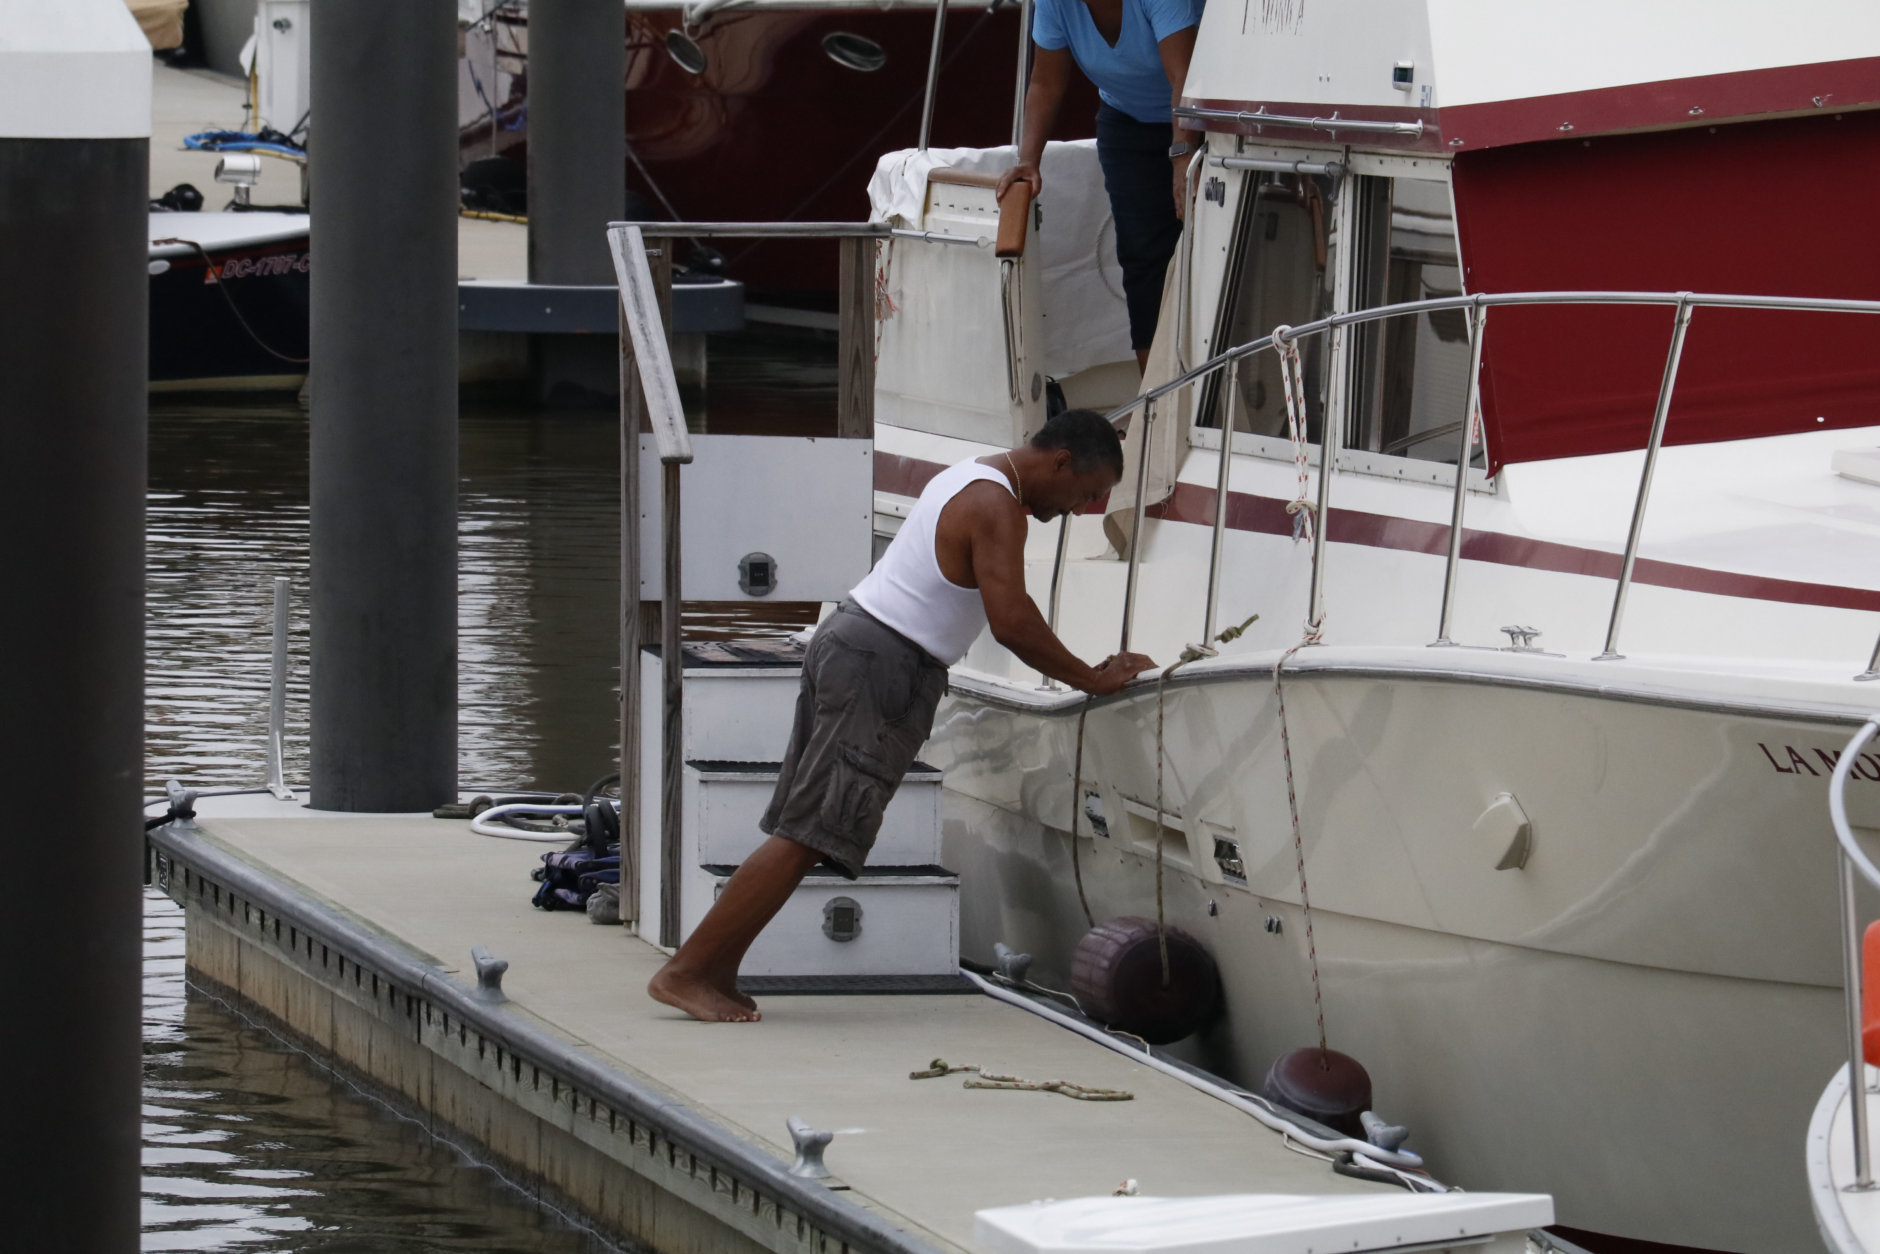 Boat owners along DC's Wharf prepare for whatever the weather sends to the D.C. region. (WTOP/Kate Ryan)